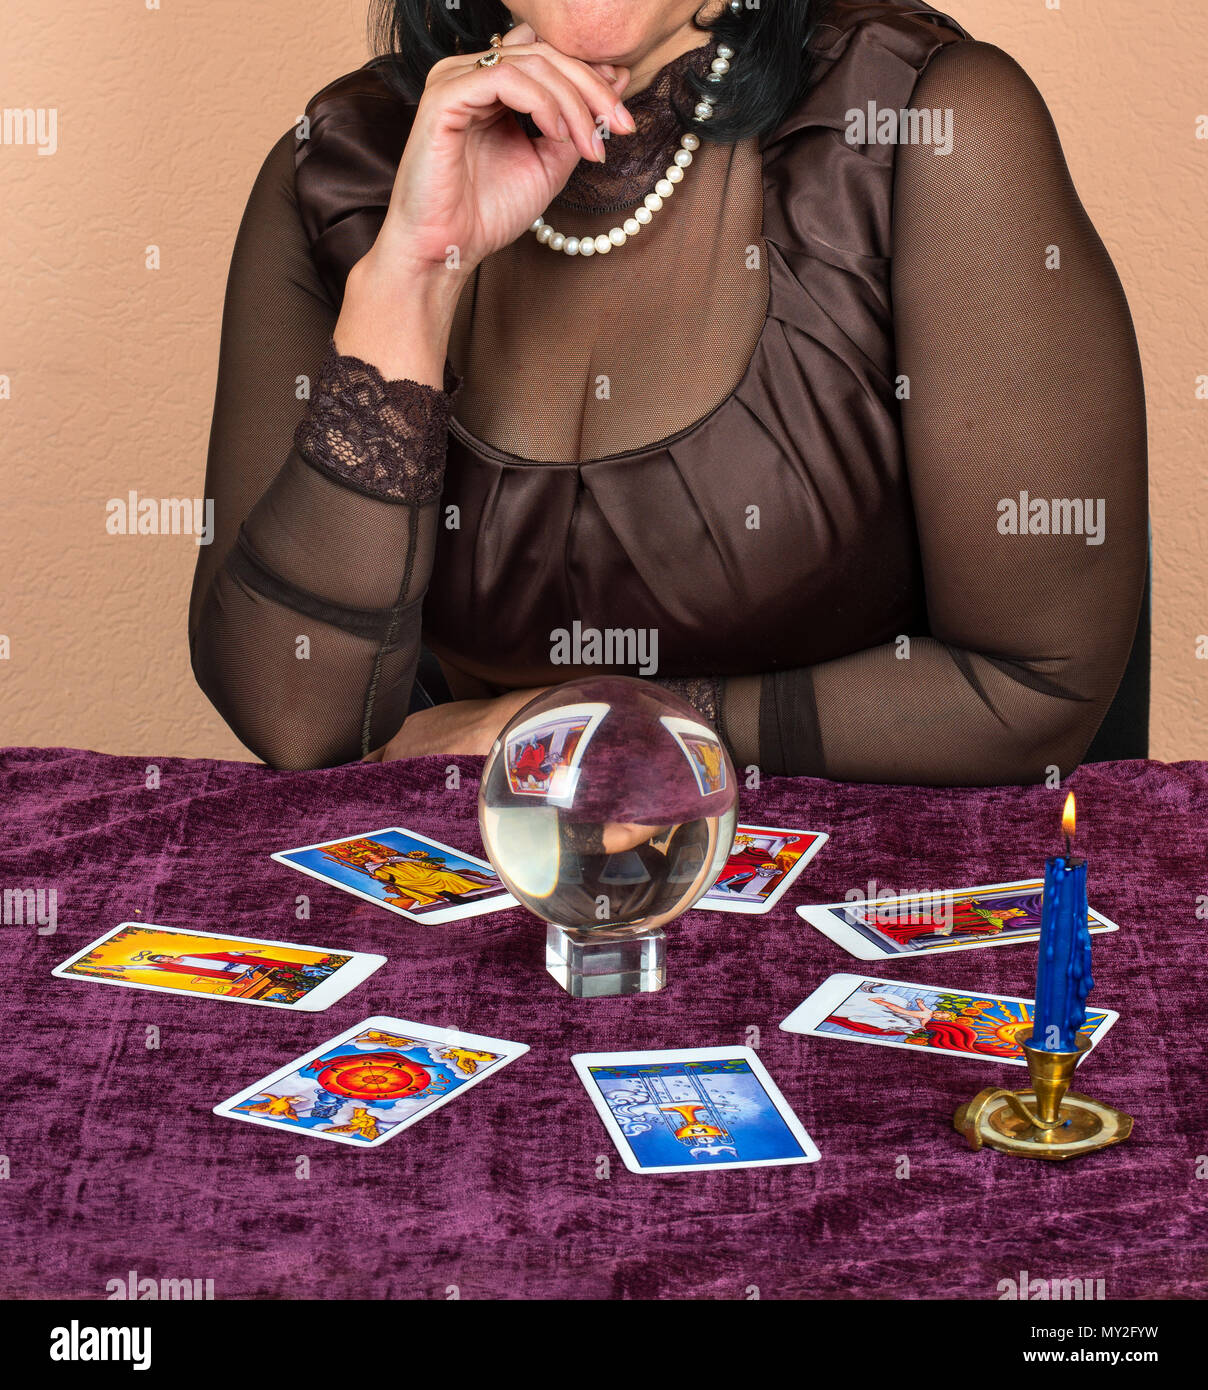 Woman laid on the table the Tarot cards for fortune telling - Stock Image